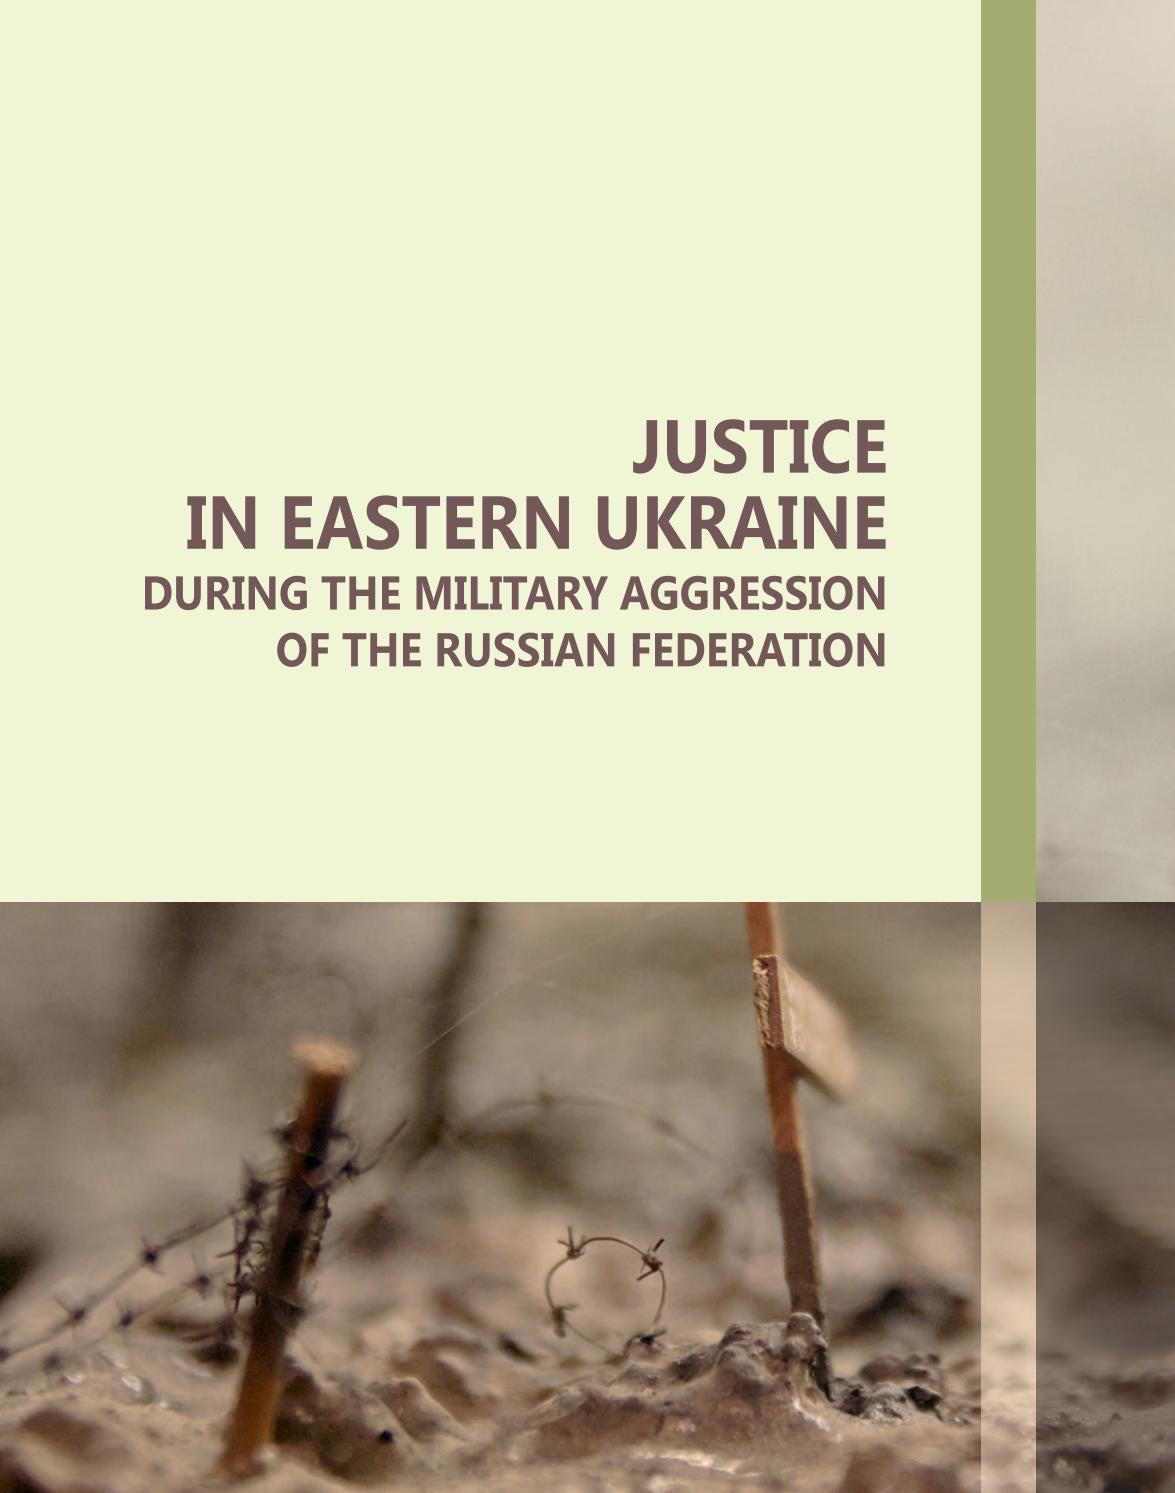 Full Research: Justice in Eastern Ukraine during the